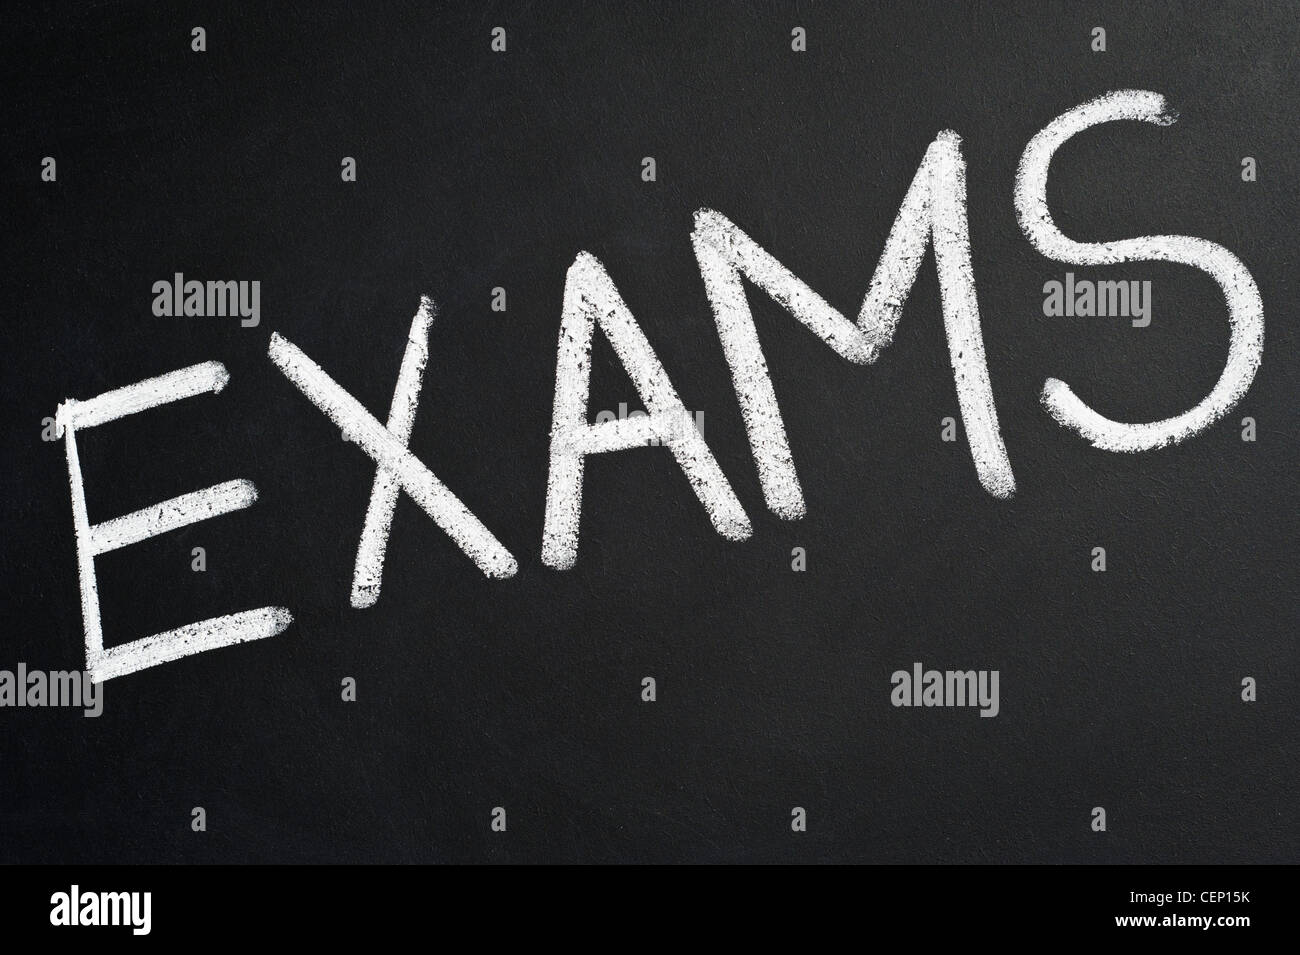 Blackboard with the word EXAMS written on it in white chalk - Stock Image